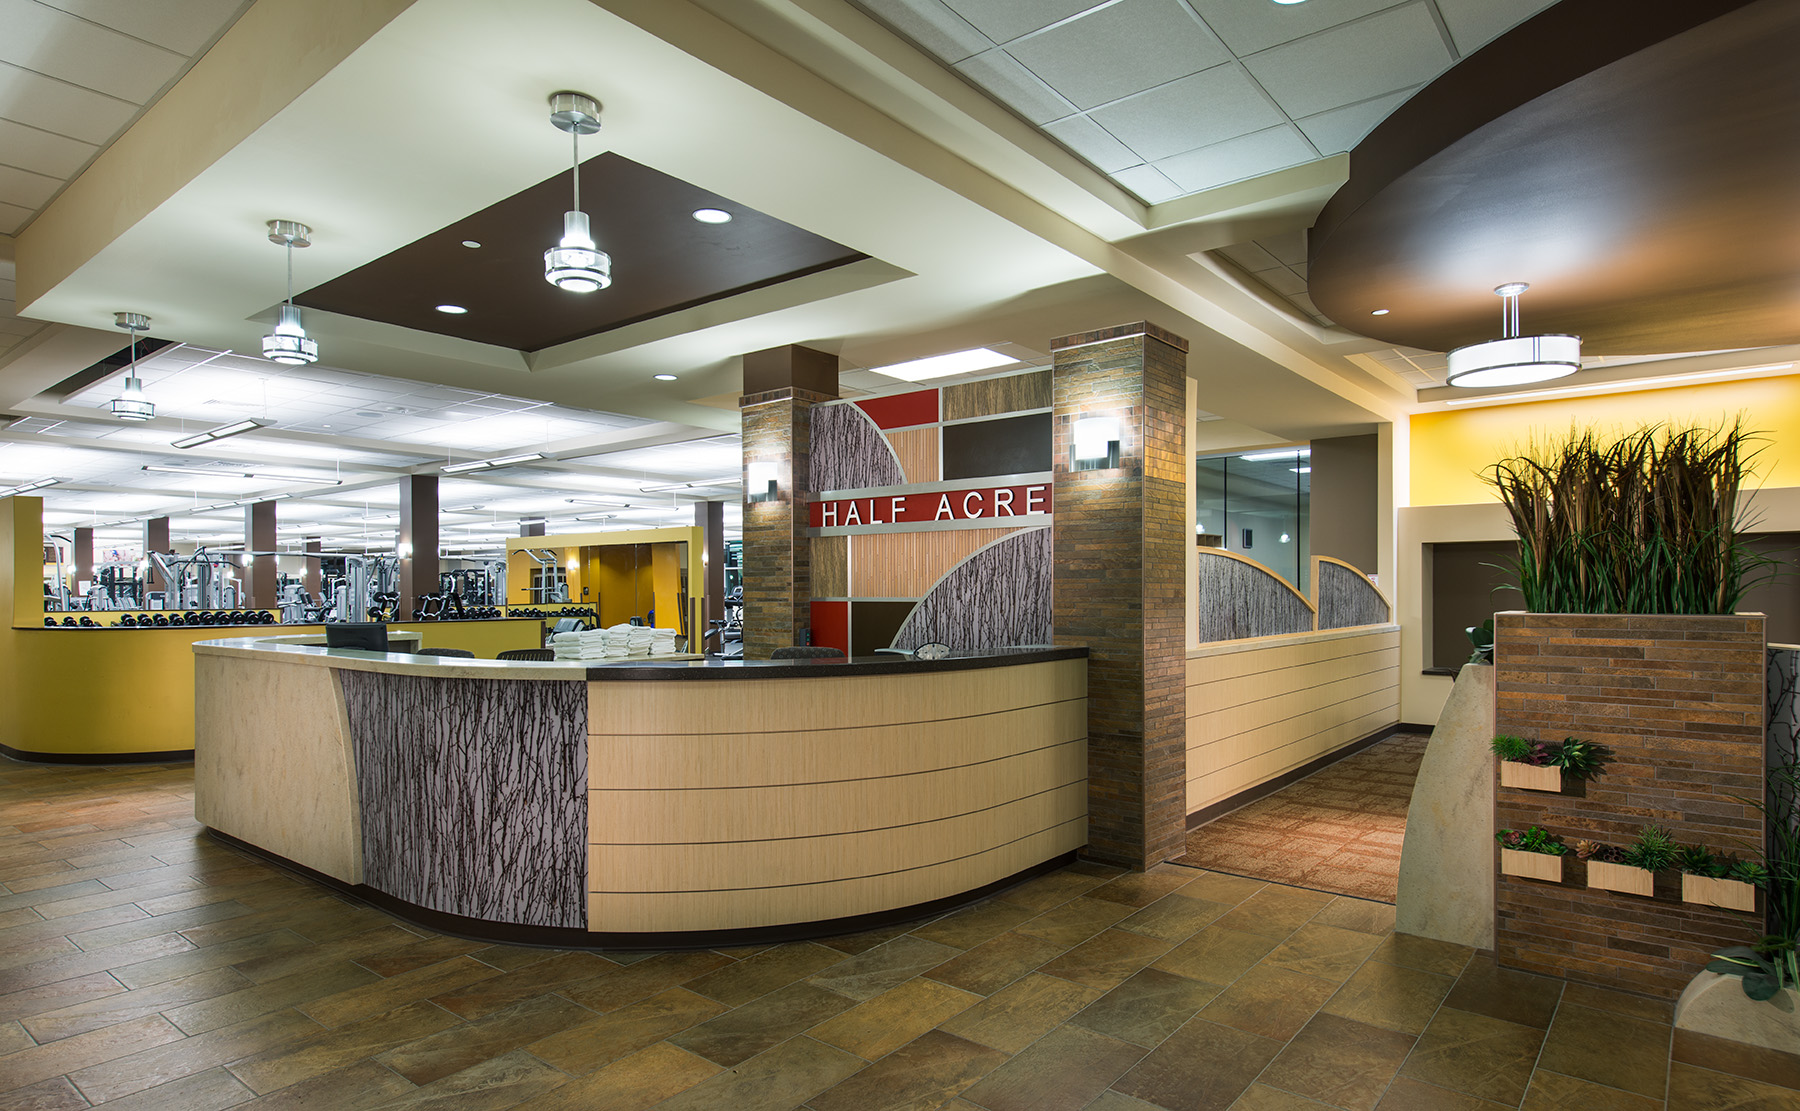 UW Half-Acre Health and Wellness lobby